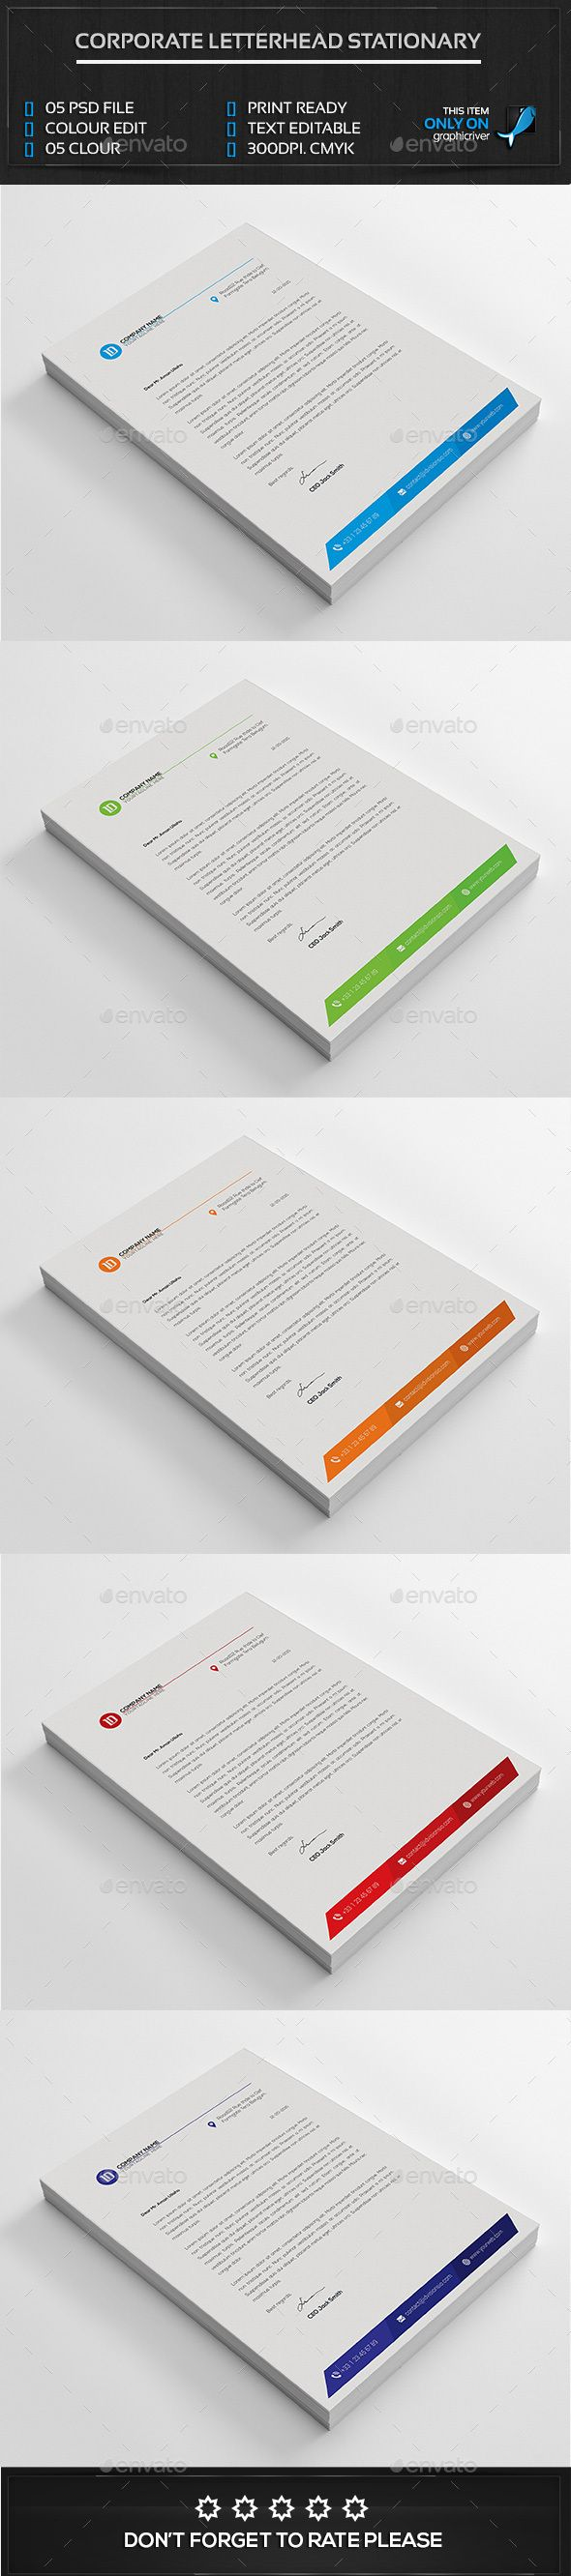 Letterhead Template - Stationery Print Templates  Make for OMS!